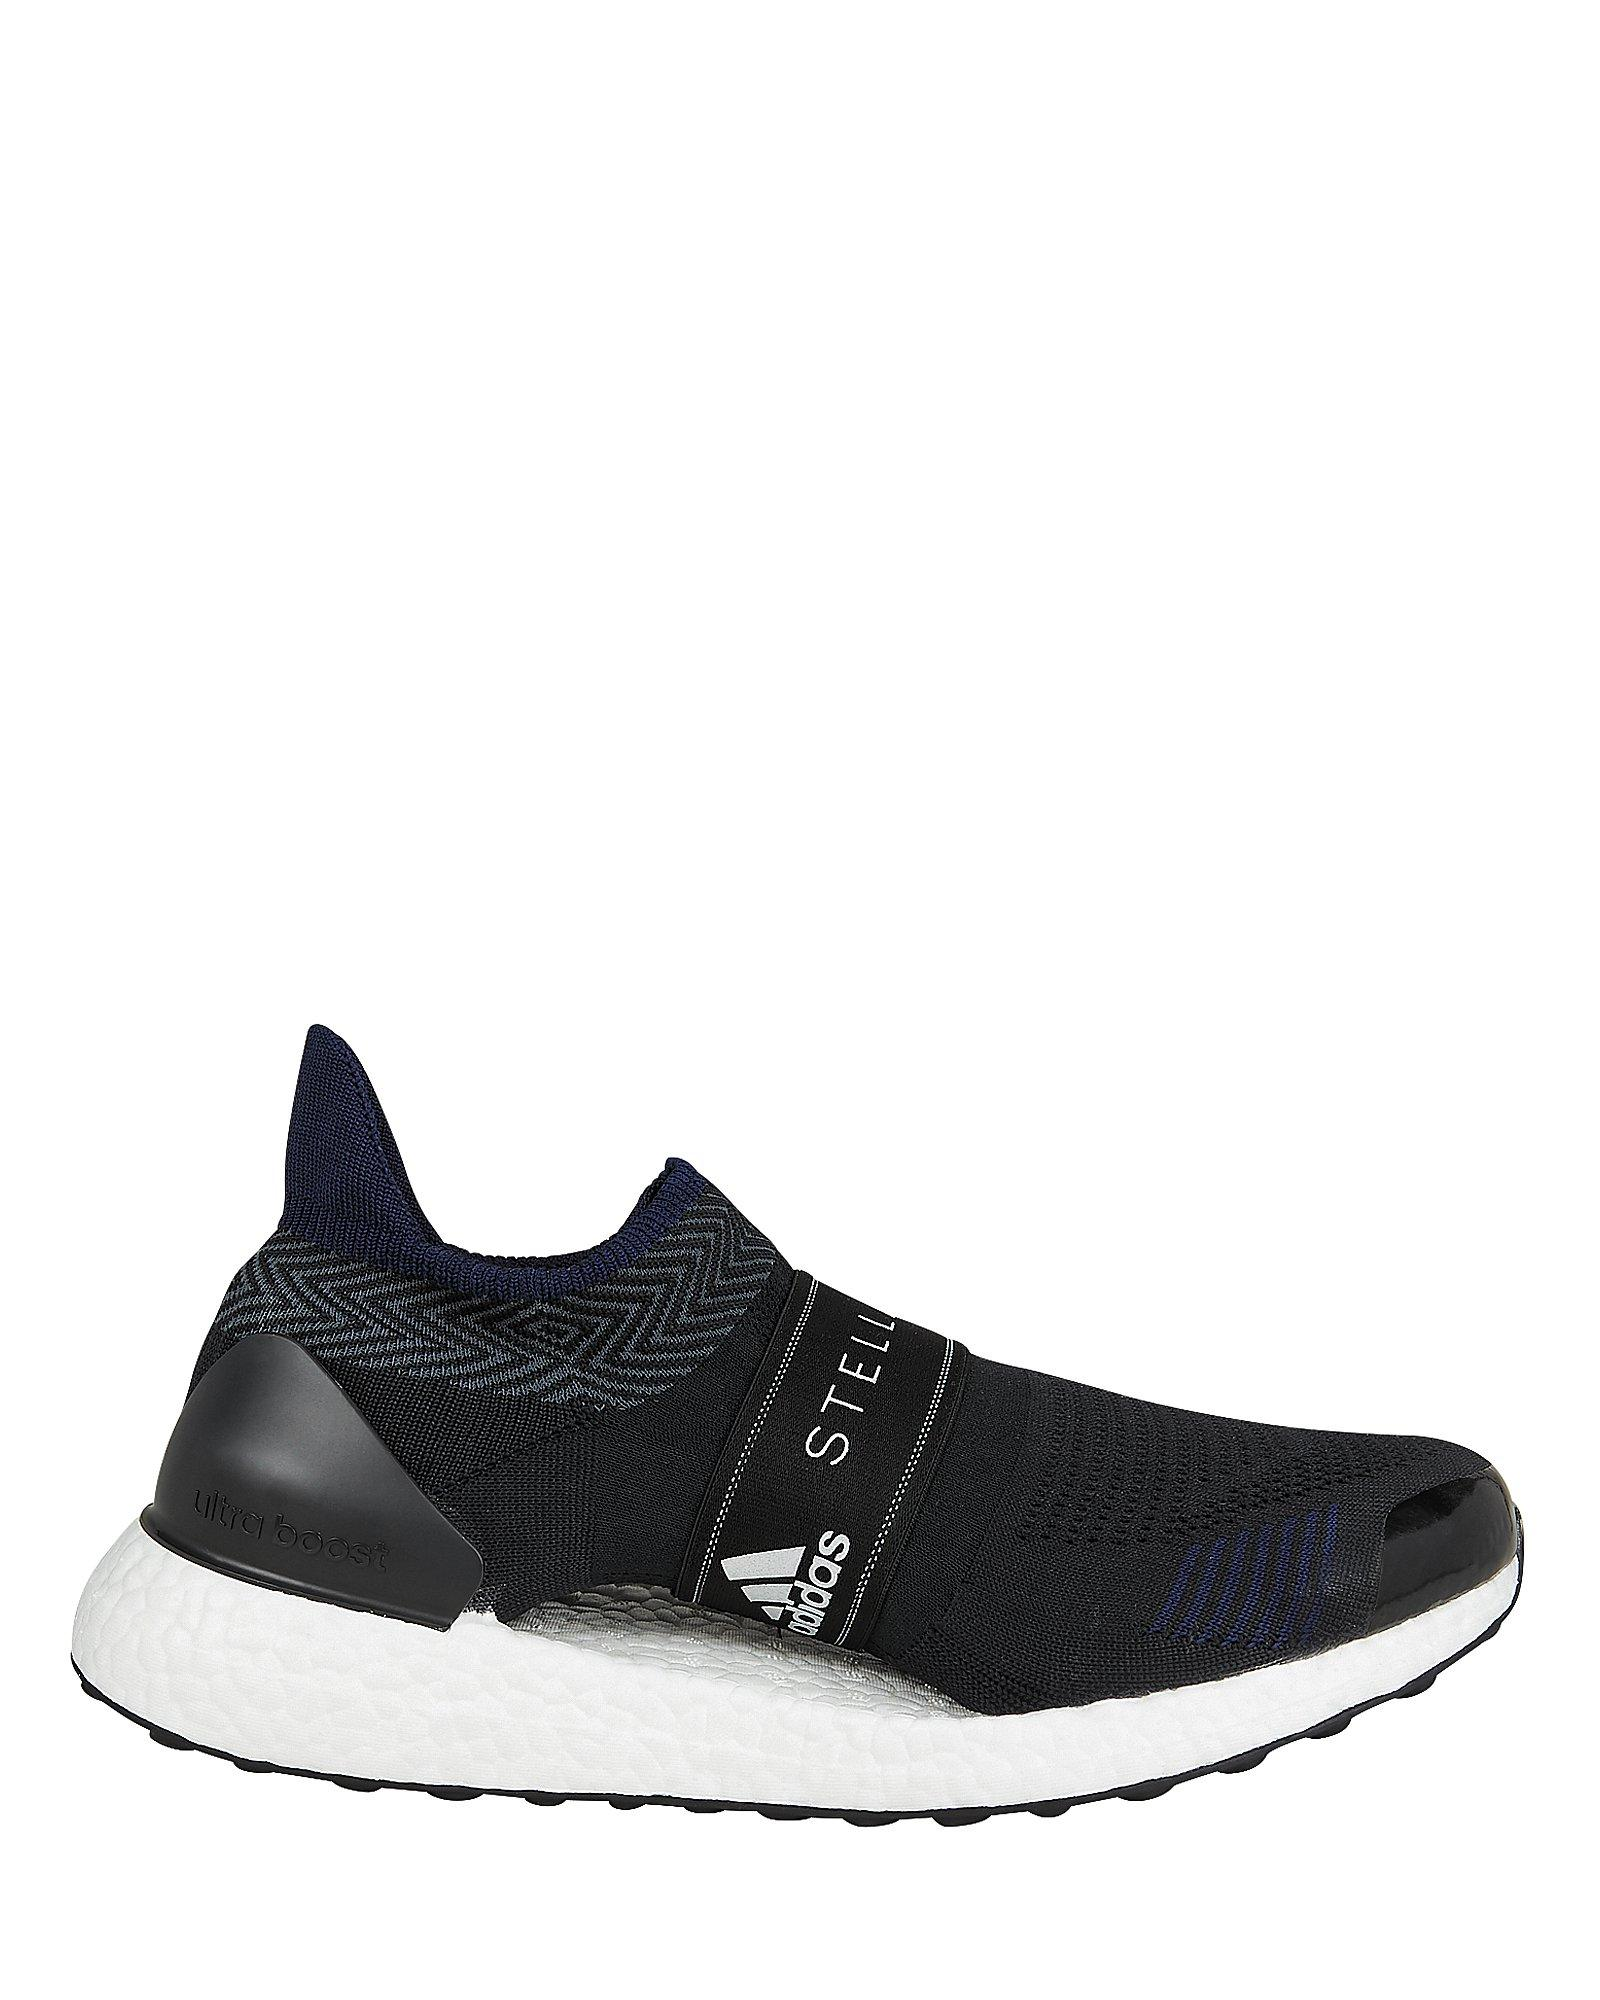 save off 03f1c f4434 adidas By Stella McCartney. Women s Black Ultra Boost Low-top Sneakers